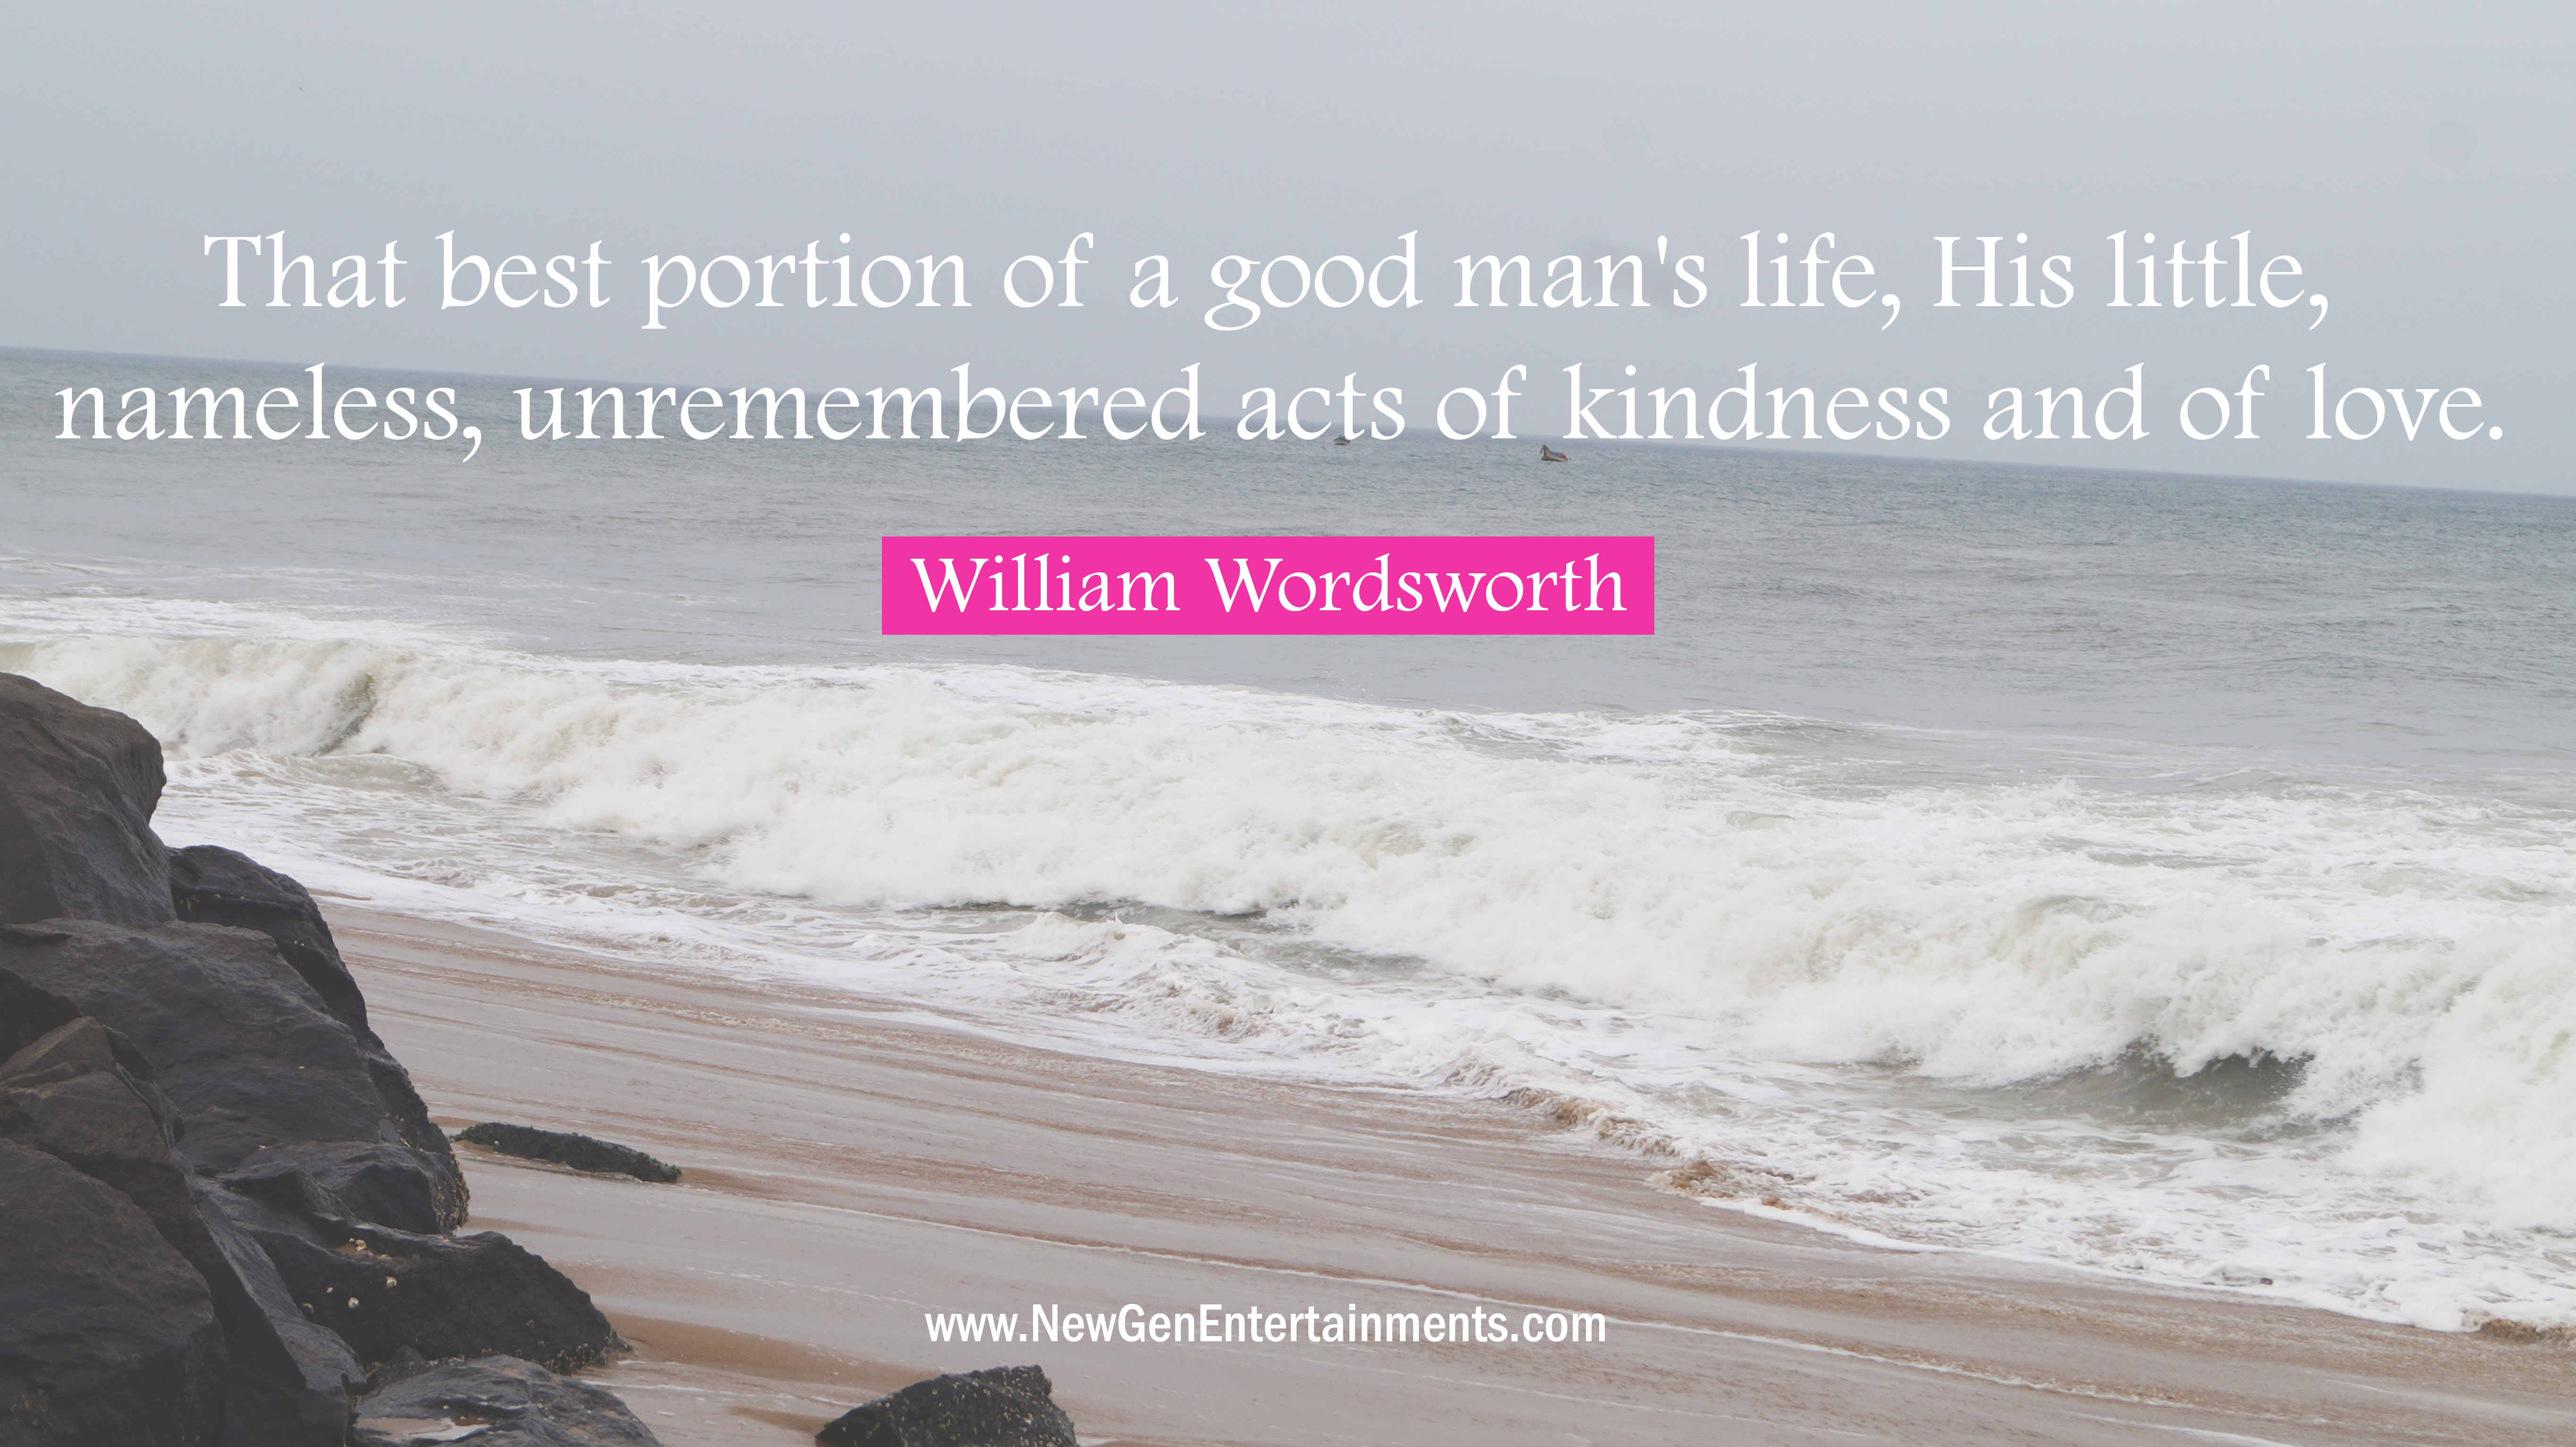 That best portion of a good man's life, His little, nameless, unremembered acts of kindness and of love